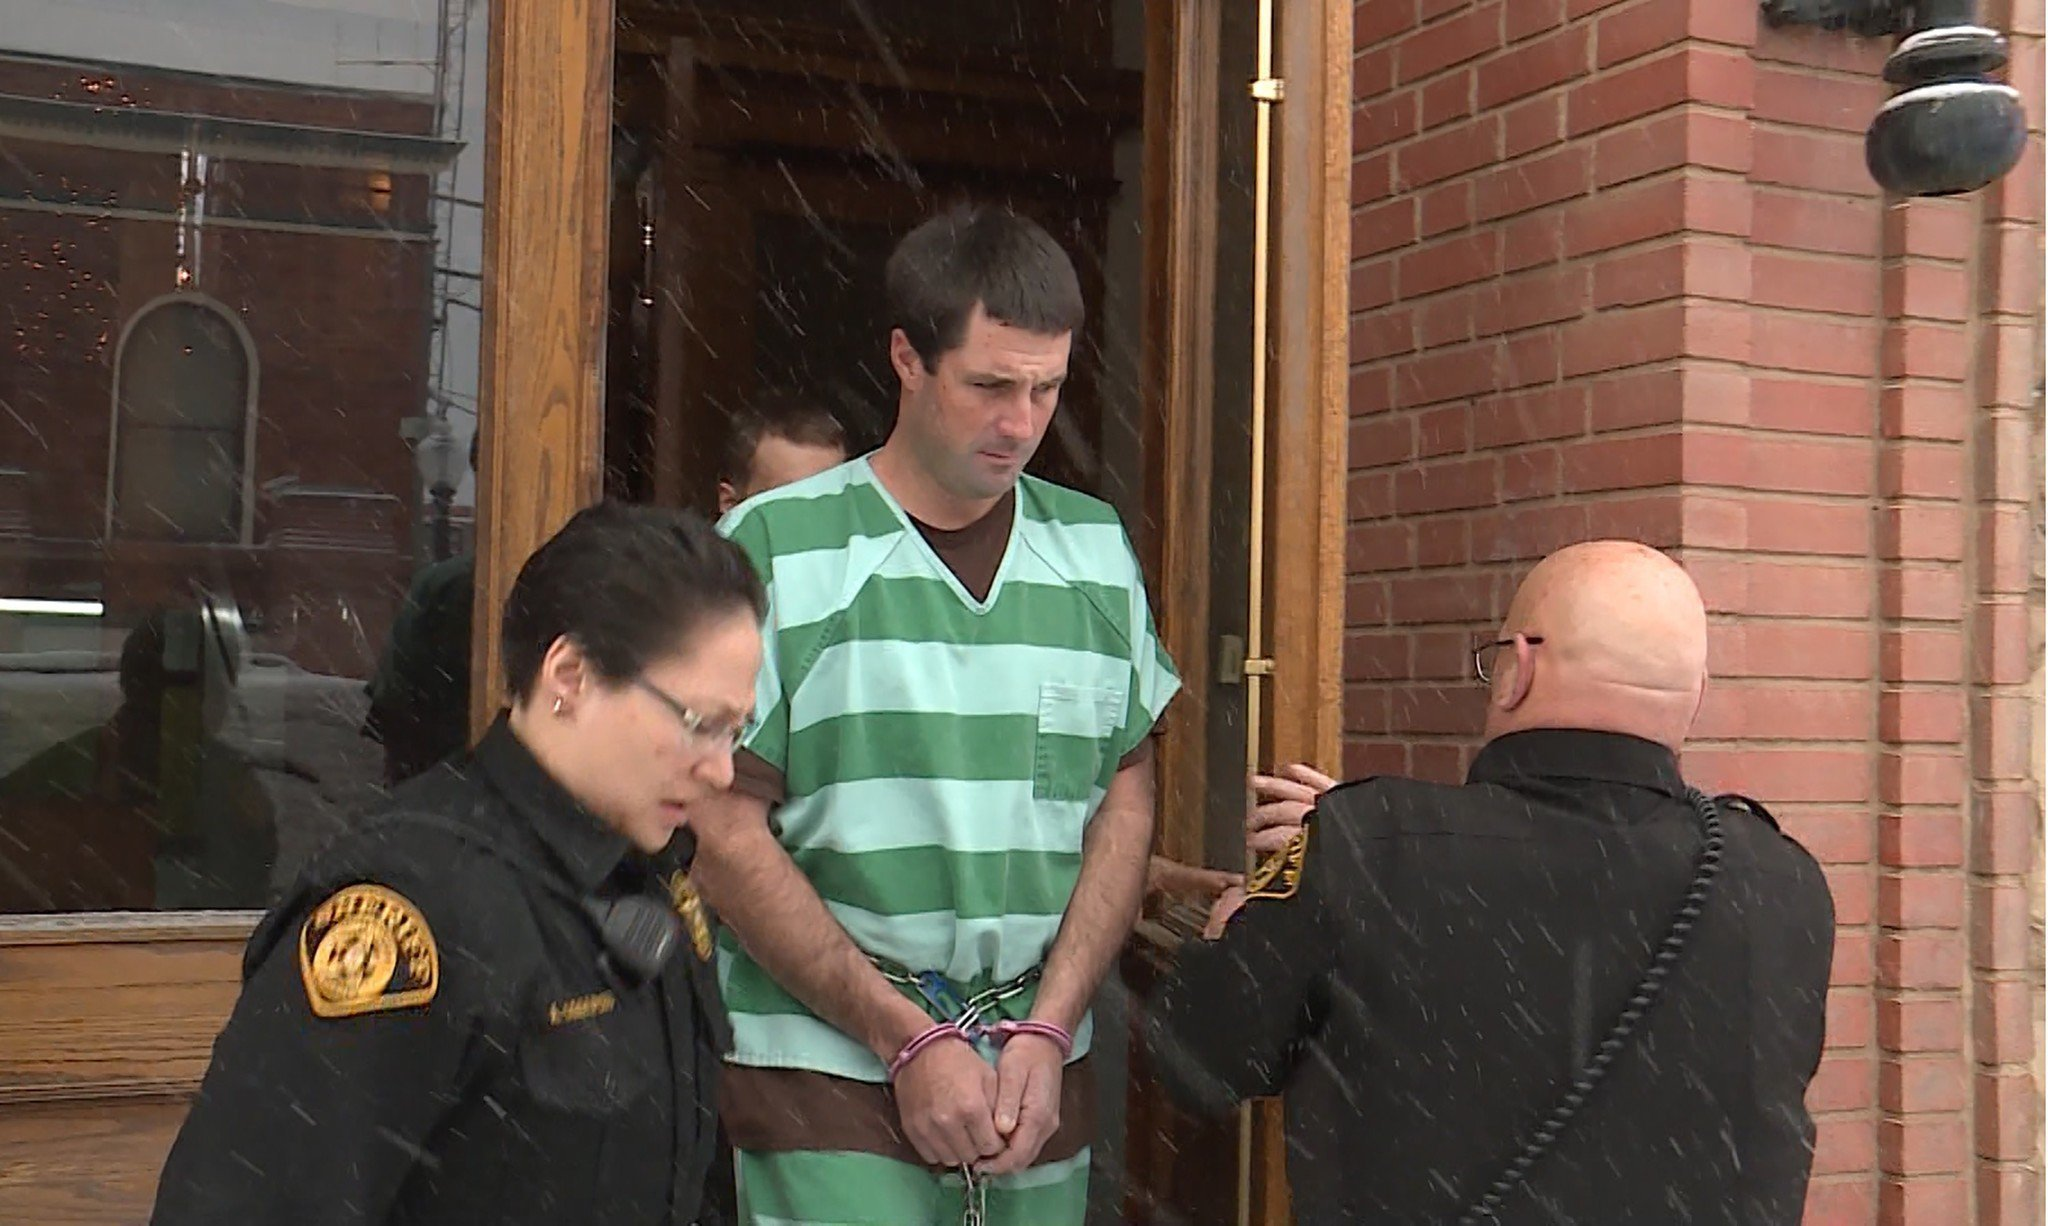 Patrick Frazee's mistress accomplice sentenced to 3 years in Colorado murder case